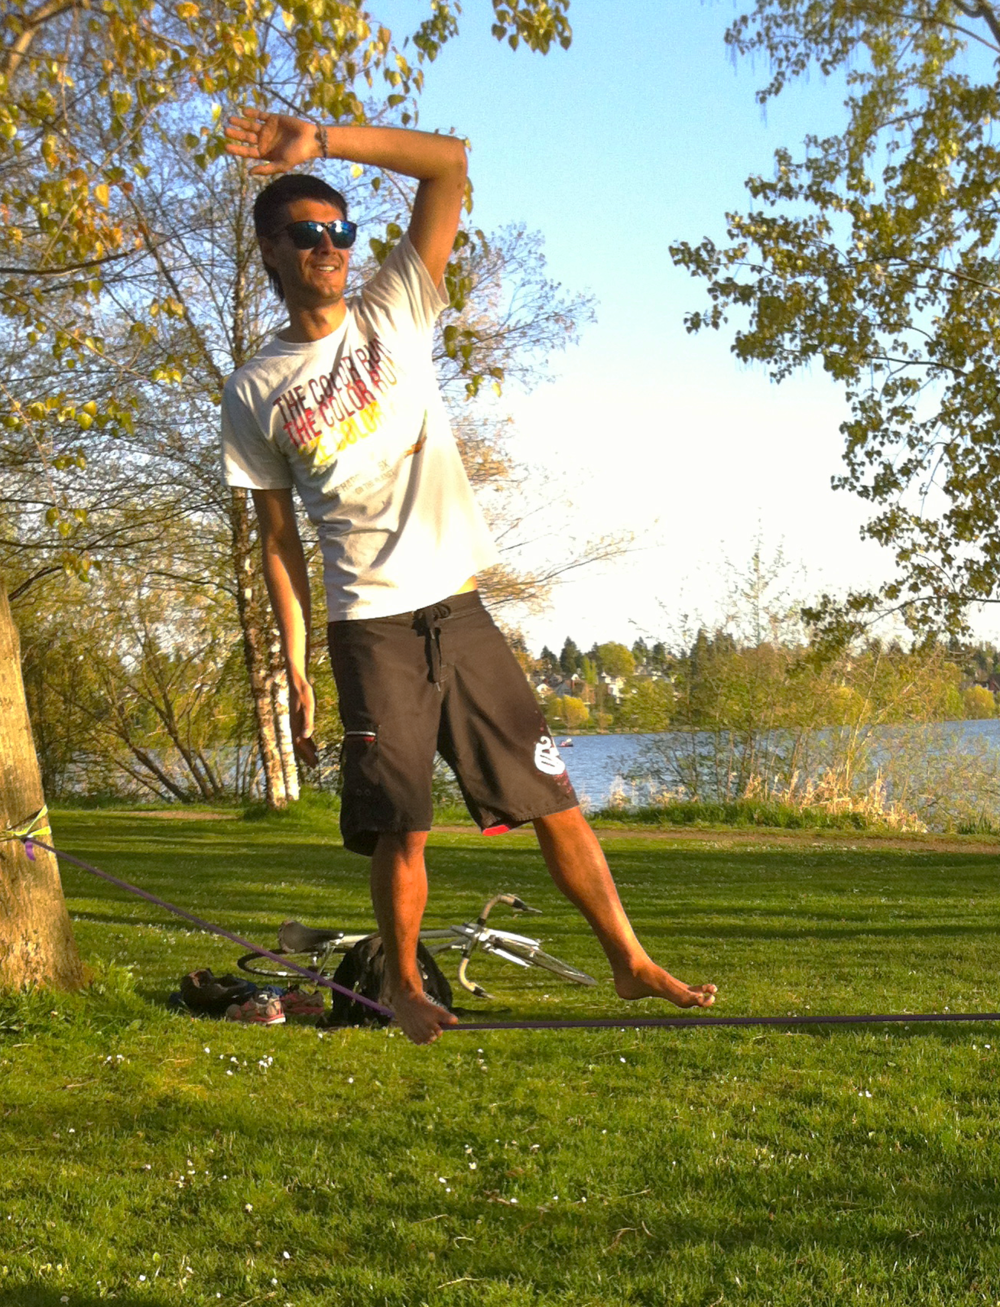 "Sustainability is not a balancing act between trade-offs – it's about driving innovation.  Walking a Slack line at Green Lake, Seattle.                 0     0     1     24     112     REI     2     1     135     14.0                            Normal     0                     false     false     false         EN-US     JA     X-NONE                                                                                                                                                                                                                                                                                                                                                                                                                                                                                                                                                                                                                                                                                                                    /* Style Definitions */ table.MsoNormalTable 	{mso-style-name:""Table Normal""; 	mso-tstyle-rowband-size:0; 	mso-tstyle-colband-size:0; 	mso-style-noshow:yes; 	mso-style-priority:99; 	mso-style-parent:""""; 	mso-padding-alt:0in 5.4pt 0in 5.4pt; 	mso-para-margin:0in; 	mso-para-margin-bottom:.0001pt; 	mso-pagination:widow-orphan; 	font-size:12.0pt; 	font-family:Cambria; 	mso-ascii-font-family:Cambria; 	mso-ascii-theme-font:minor-latin; 	mso-hansi-font-family:Cambria; 	mso-hansi-theme-font:minor-latin;}"